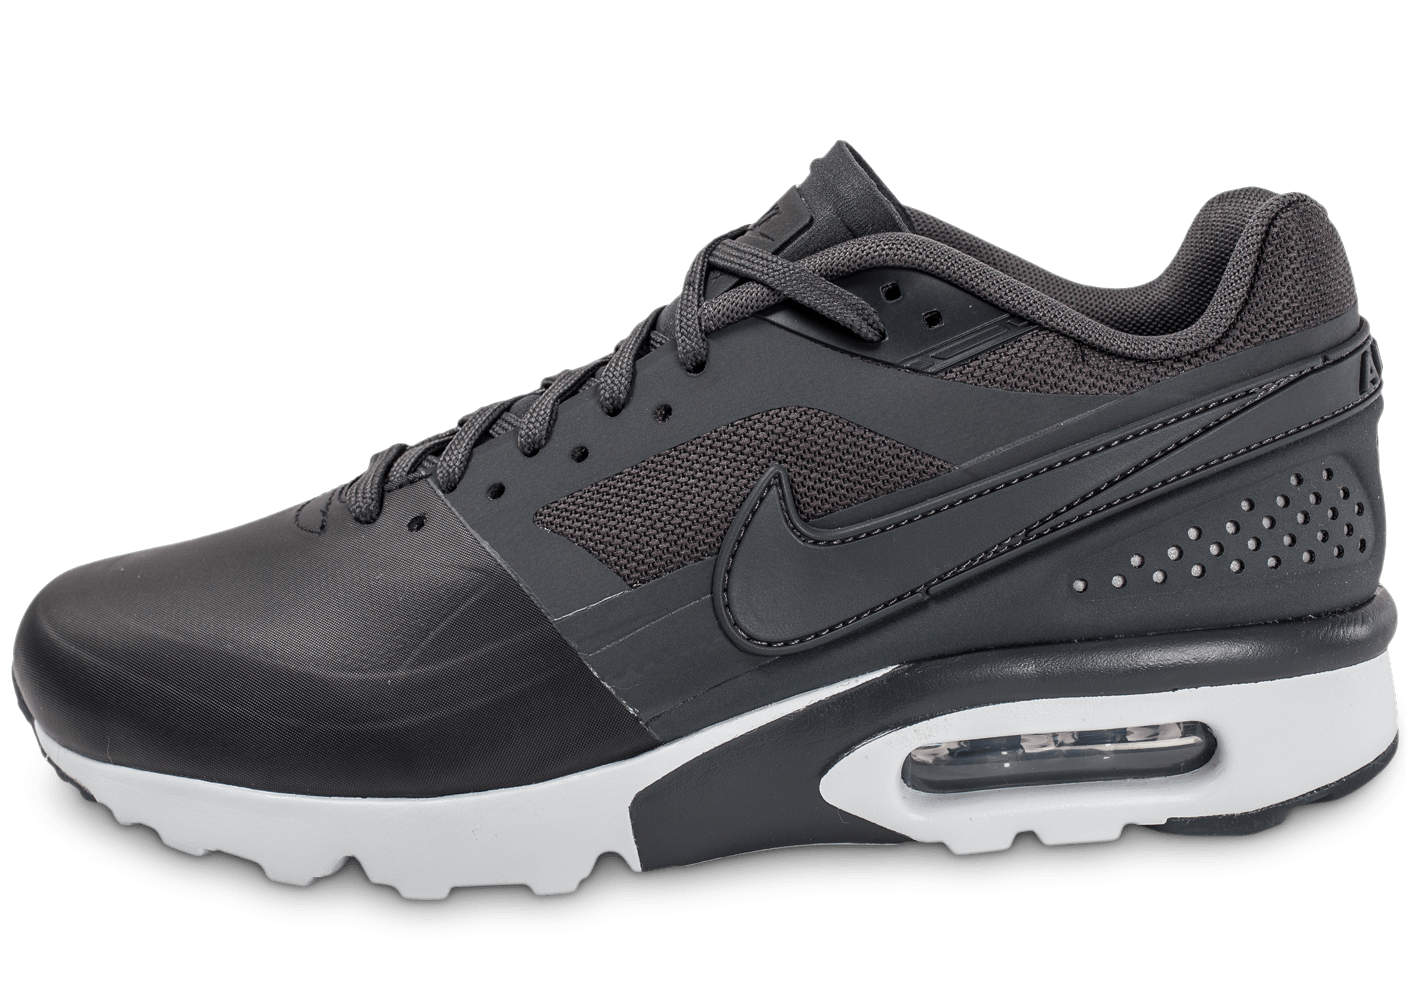 new arrival 600c4 597a8 Just like the Nike Air Max 95,Nike has decided to give the Nike Air Max BW  the denim treatment. Although we u0027re not used to seeing the classic Air  Max ...